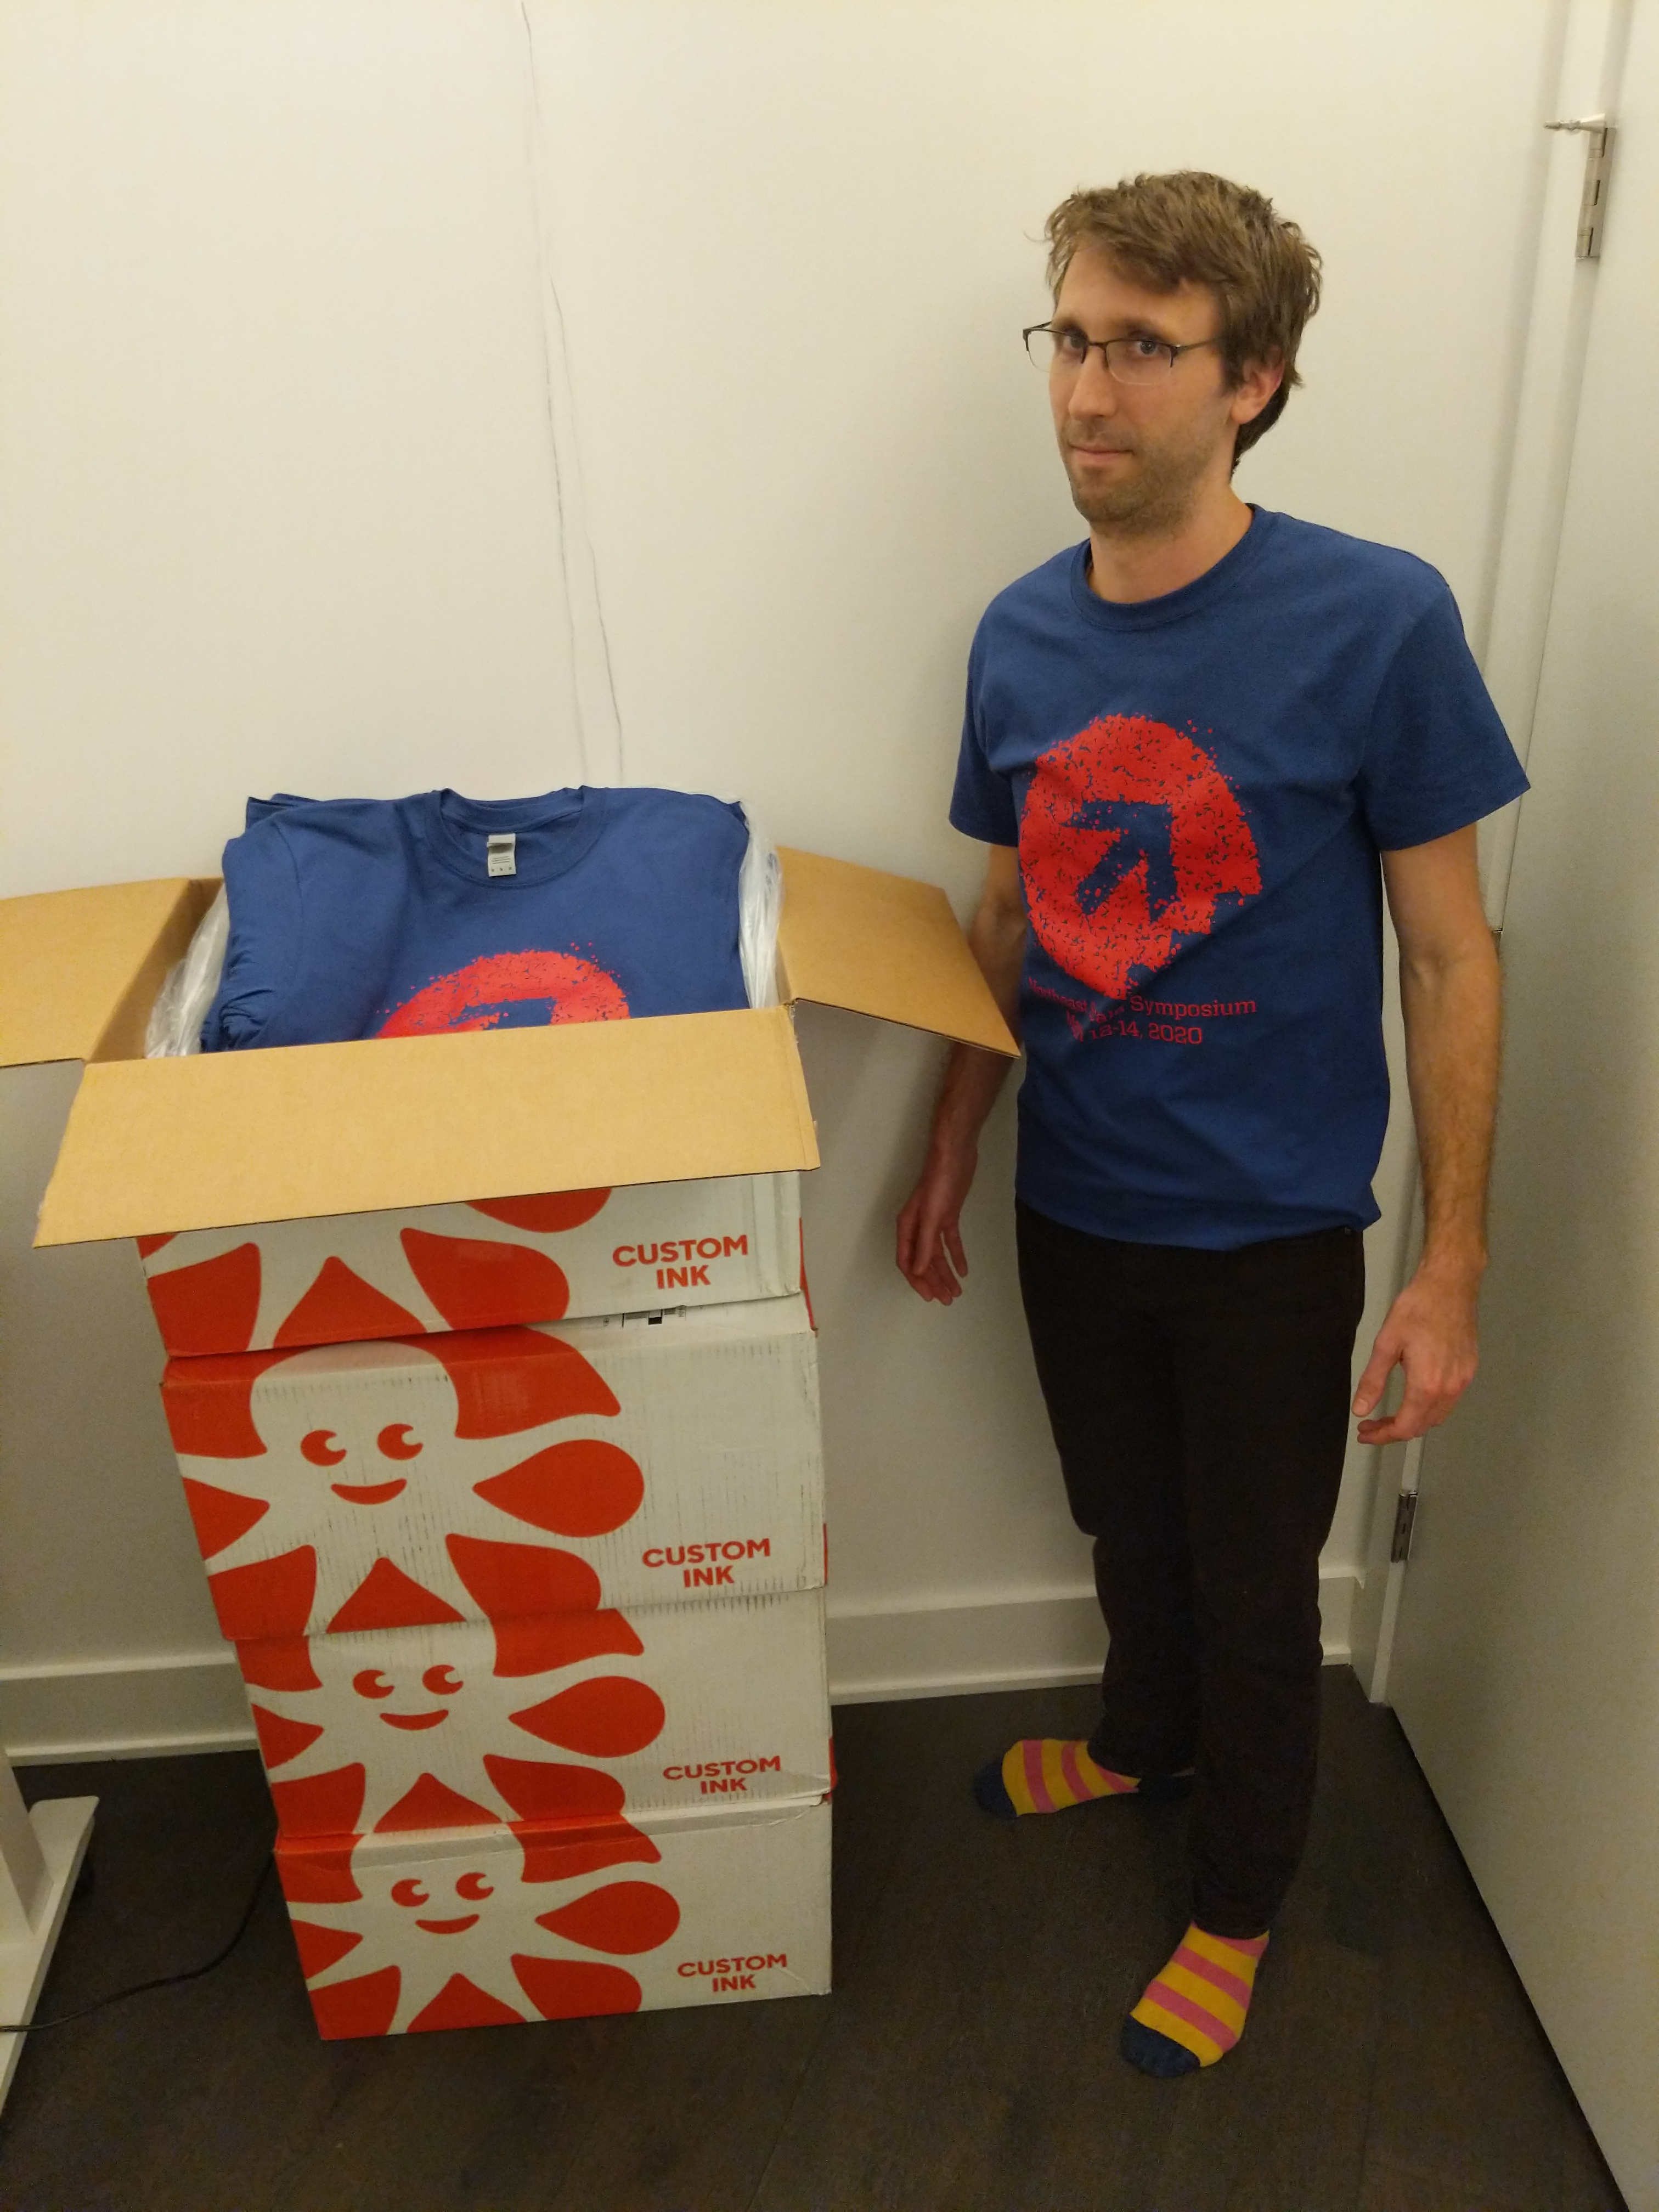 Ryan standing next to a large stack of boxes full of t-shirts